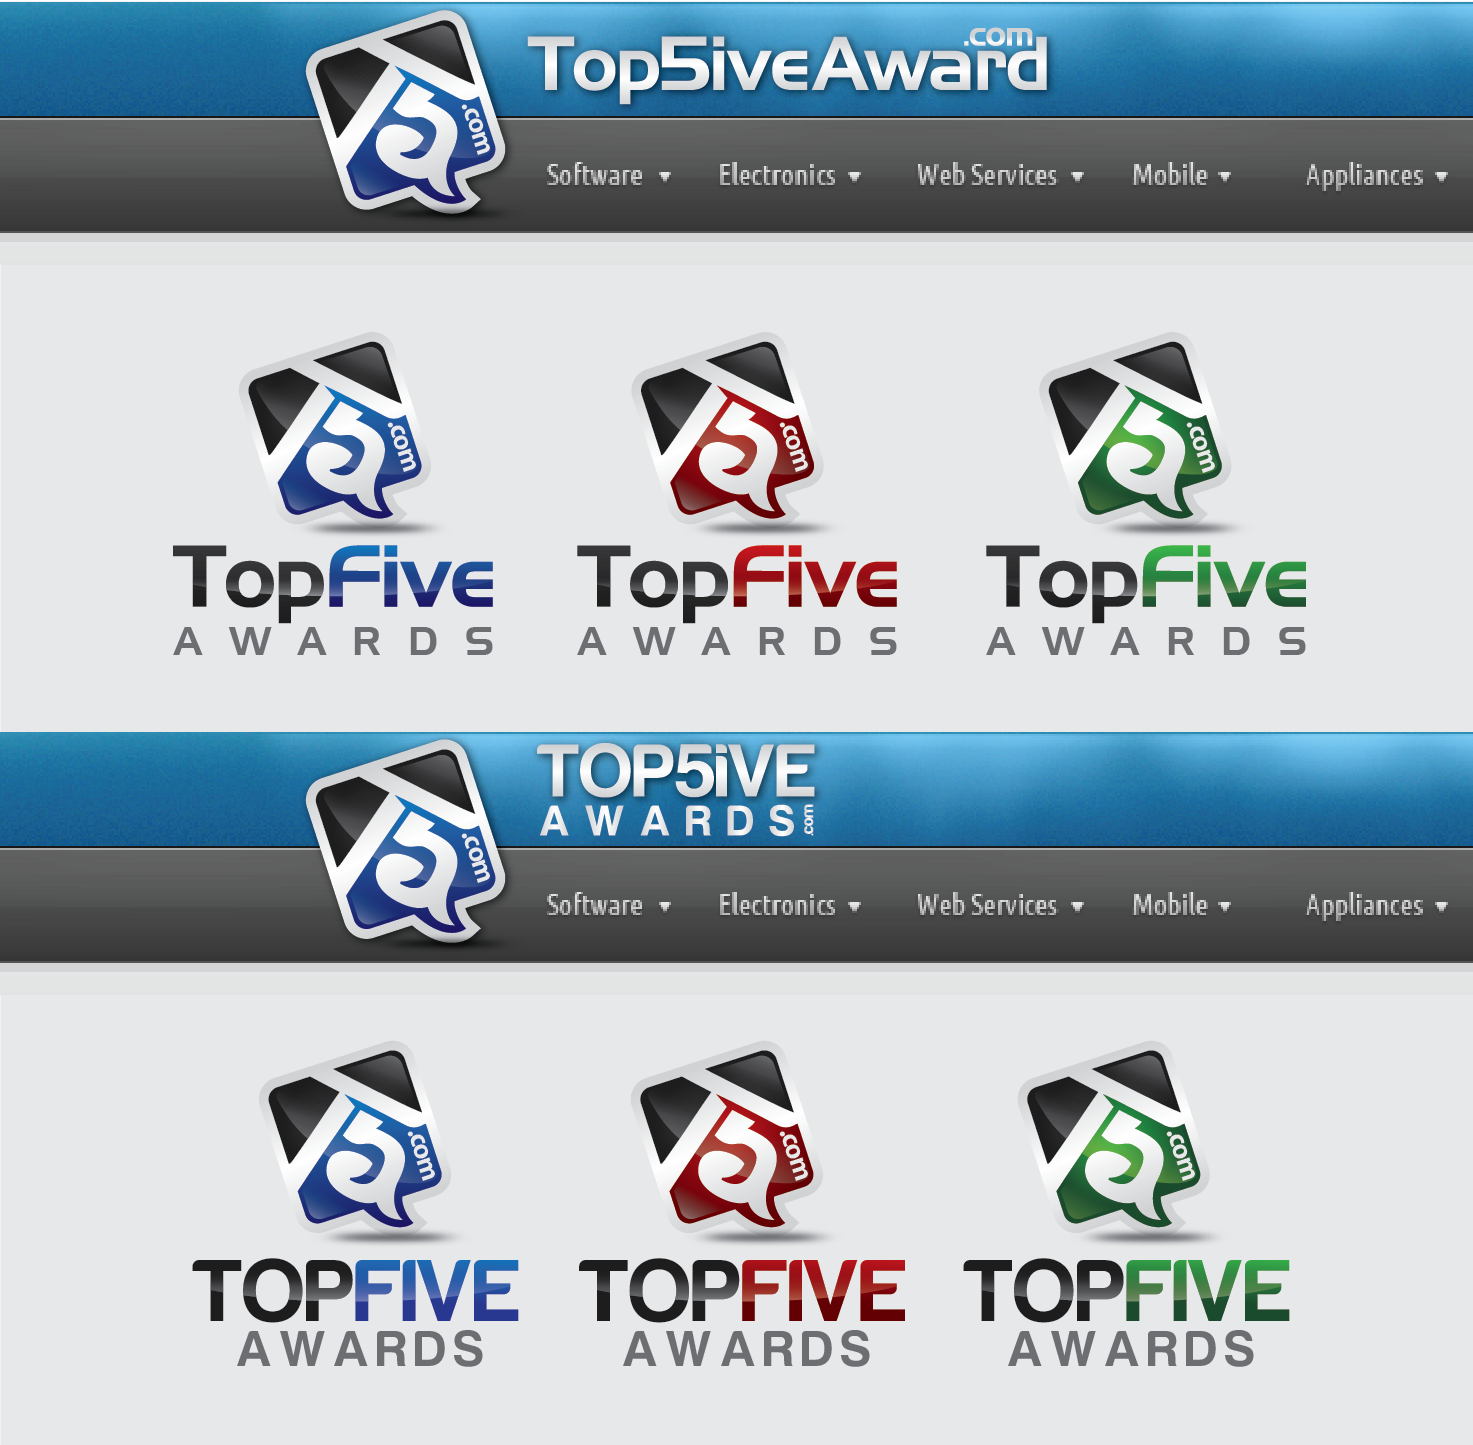 Our BRAND Needs You! TopFiveAwards Logo and Business Card Needed! + $349 Bonus Offer for MASCOT